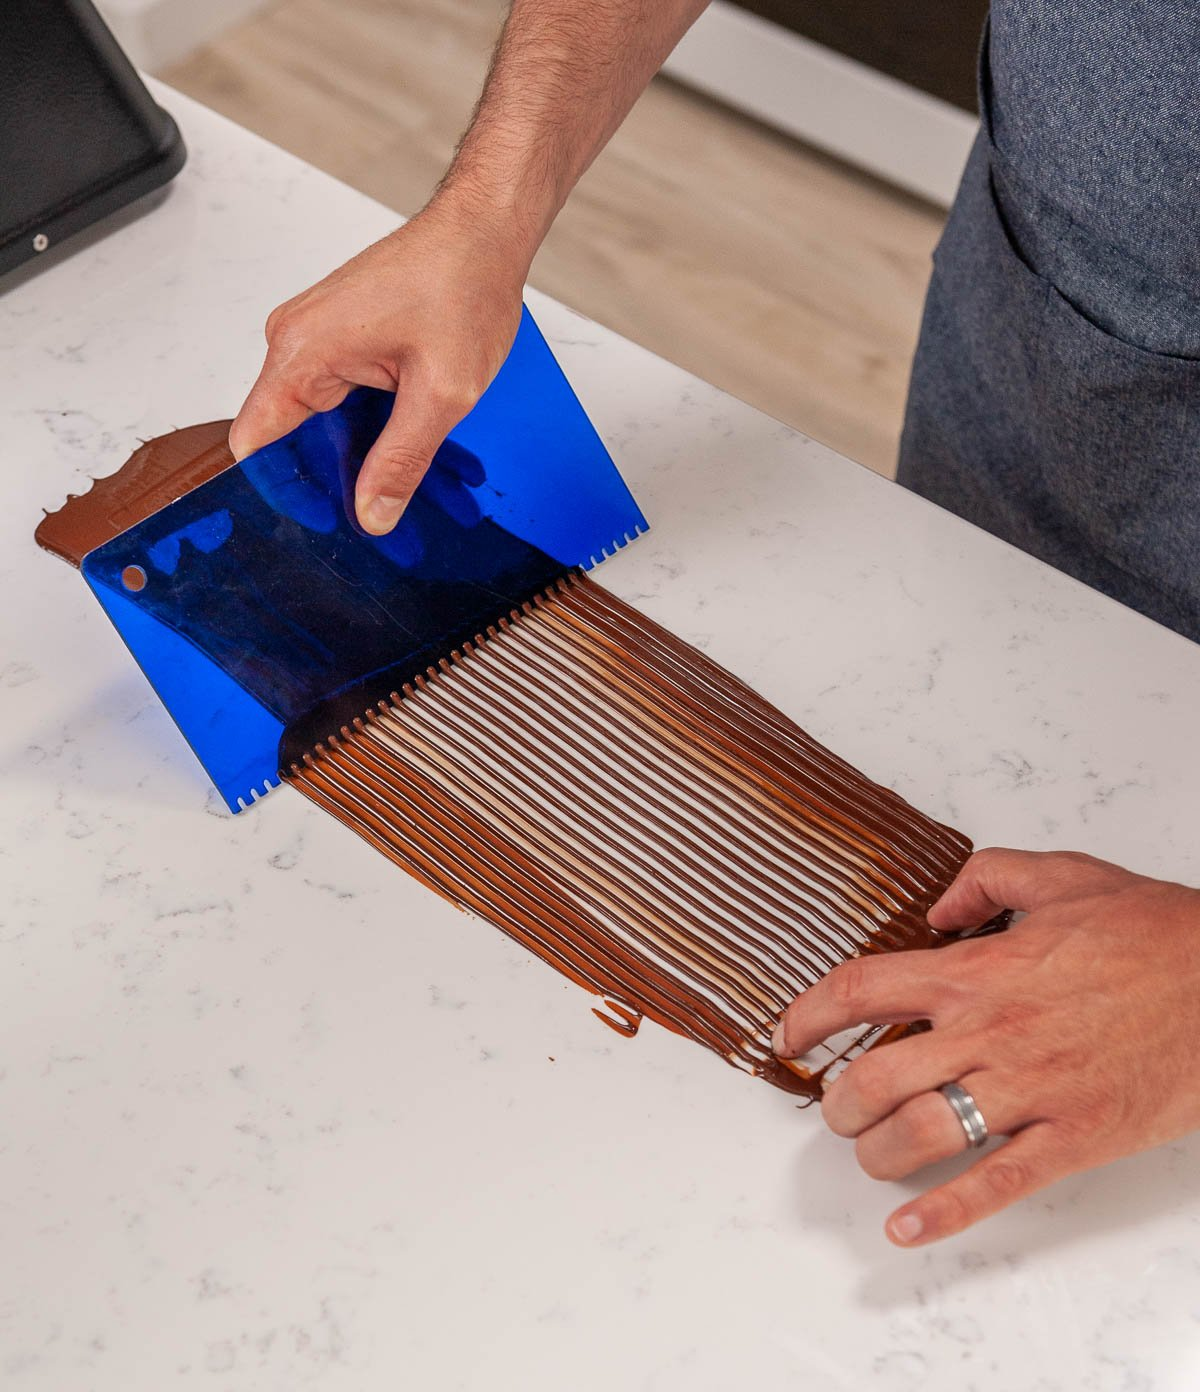 using a cake comb to scrape lines into chocolate on acetate